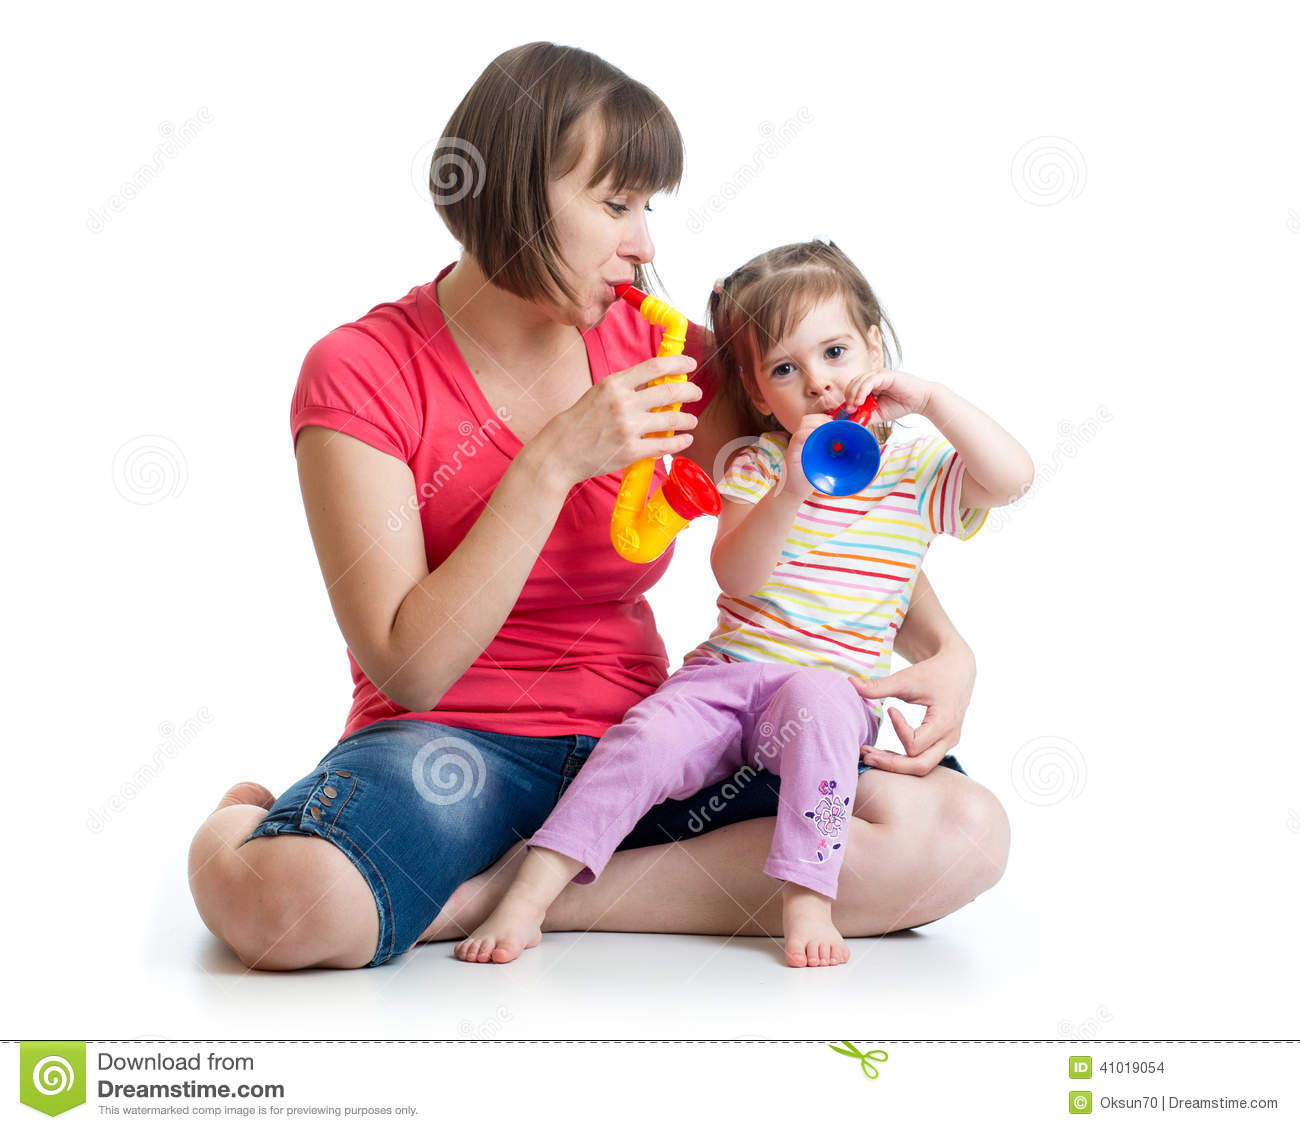 Dating a girl who has a kid